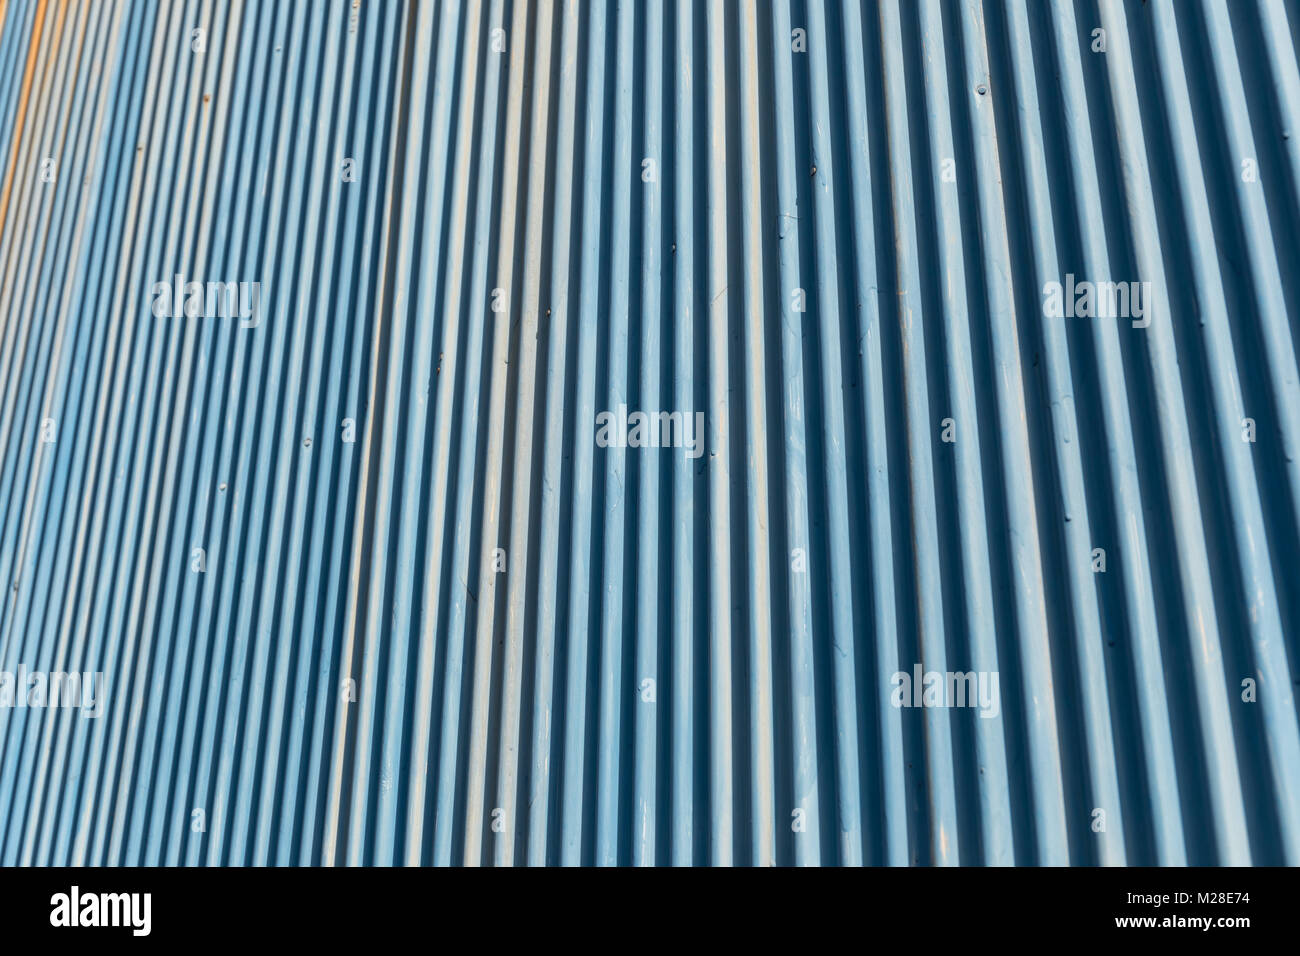 Blue corrugated metal wall - Stock Image